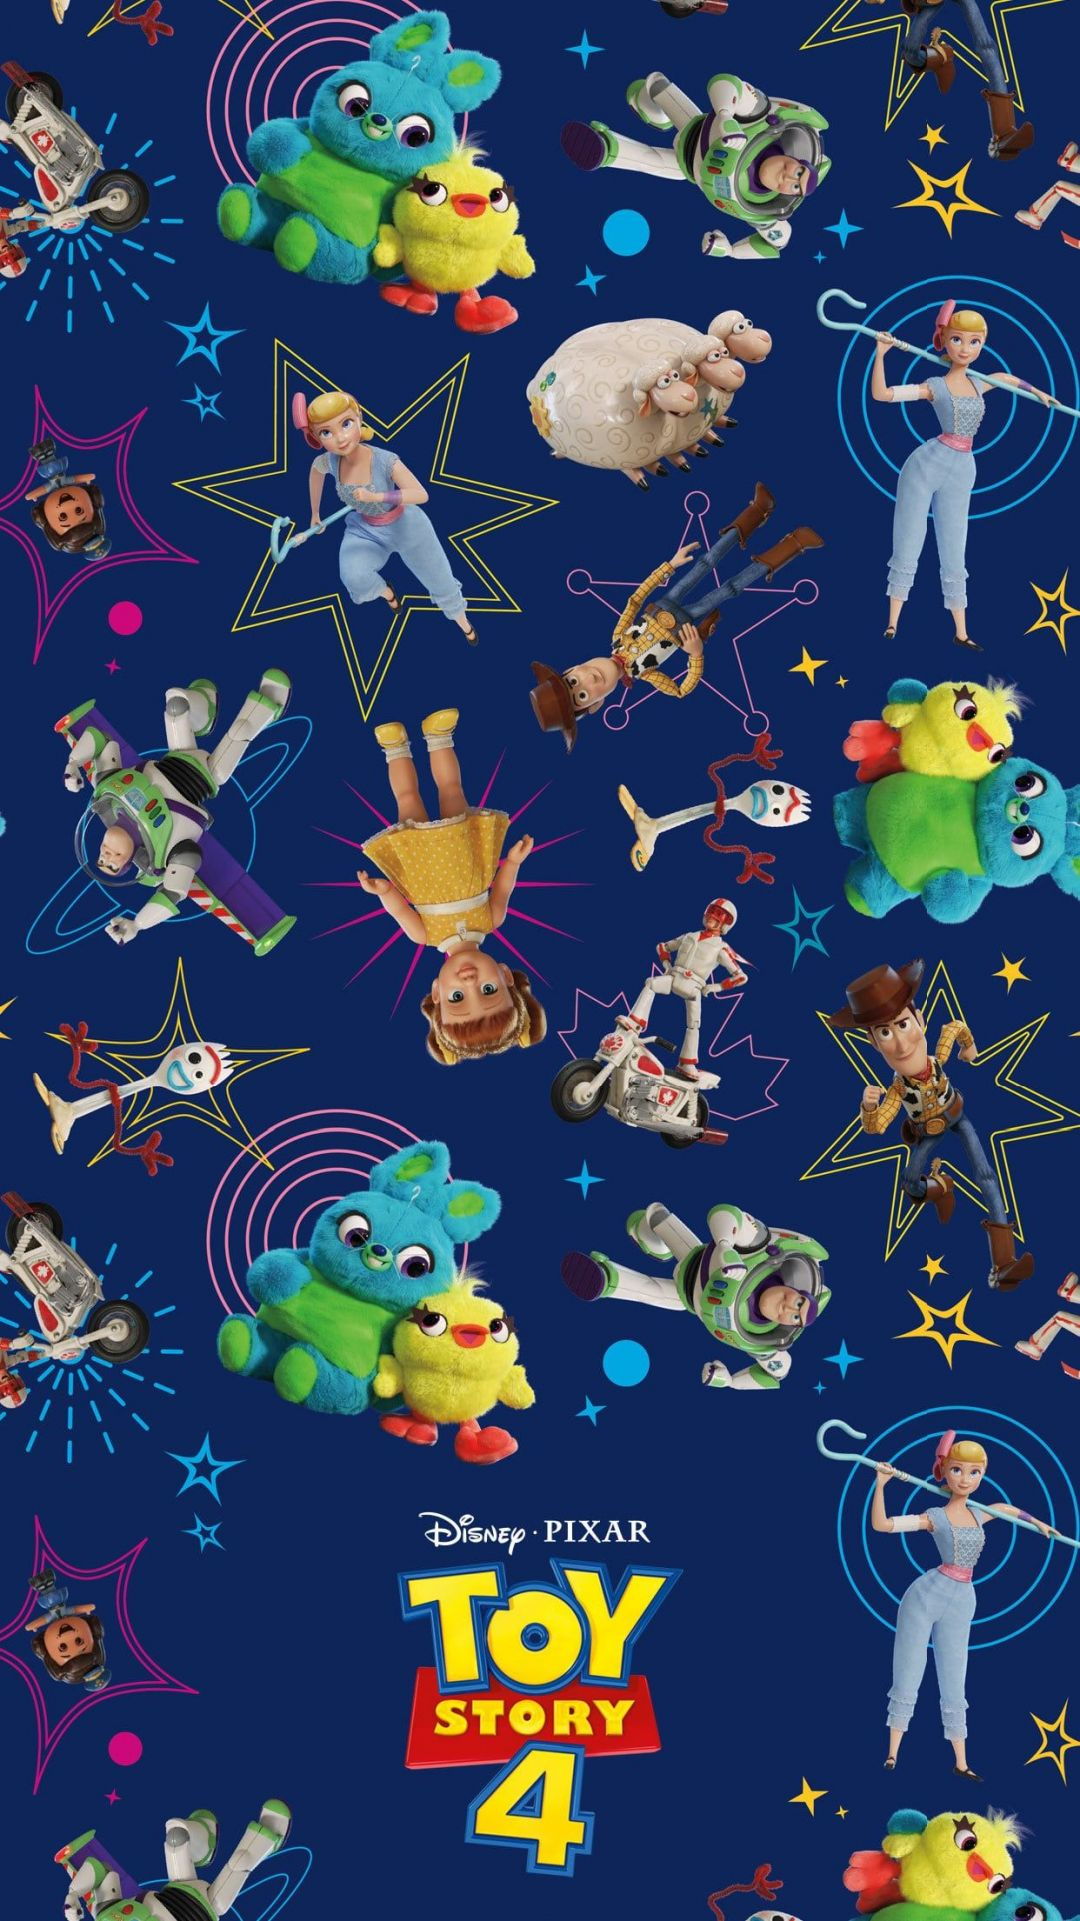 50 Toy Story 4 Android Iphone Desktop Hd